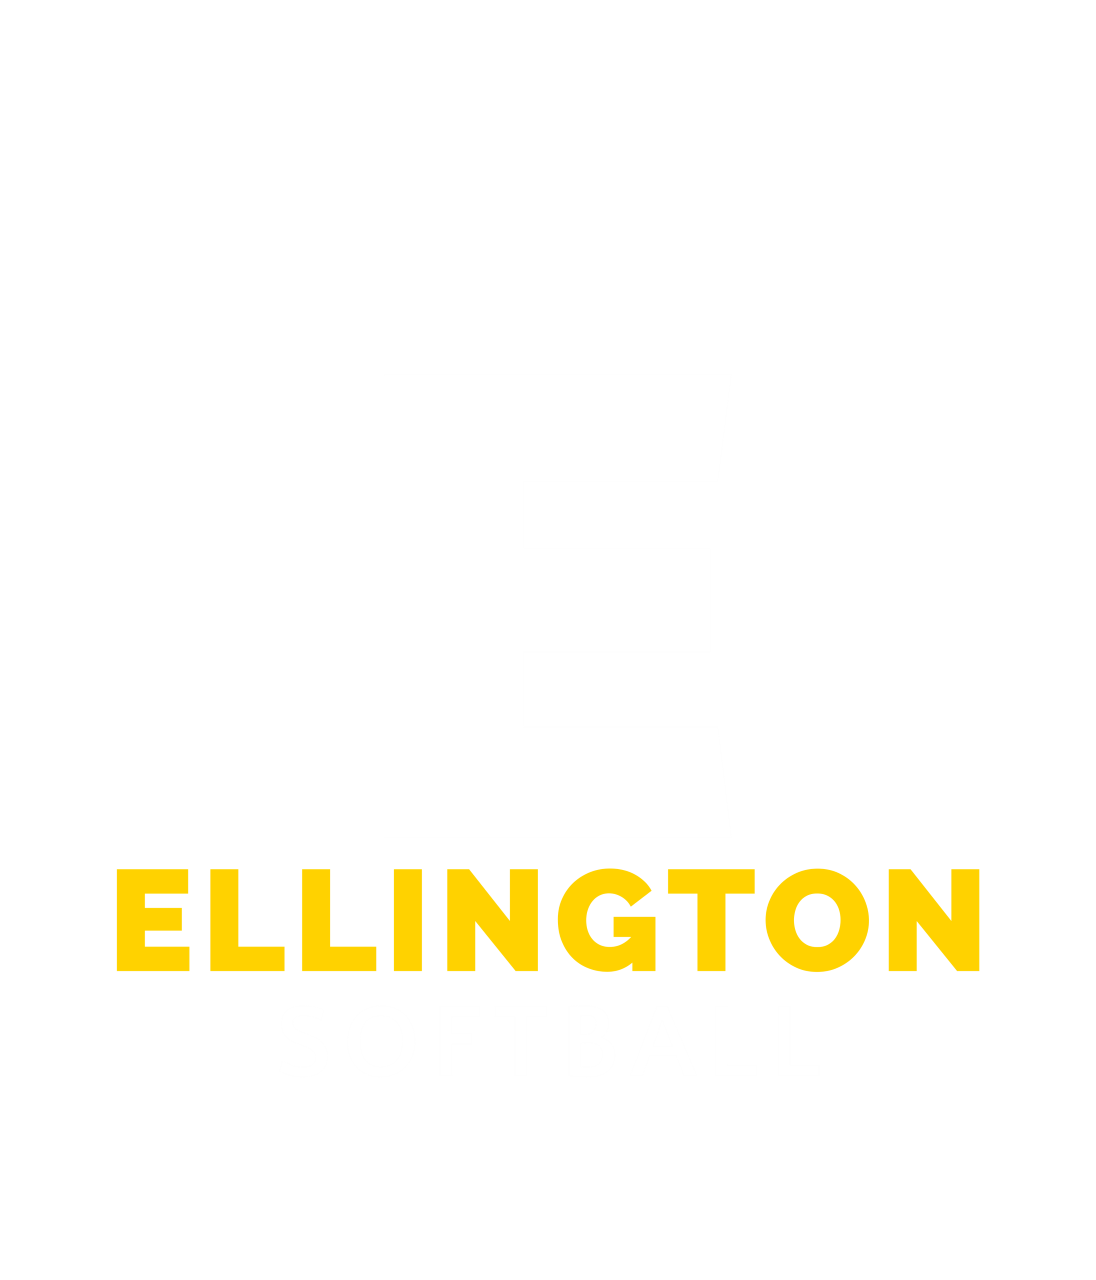 Ellington Softball